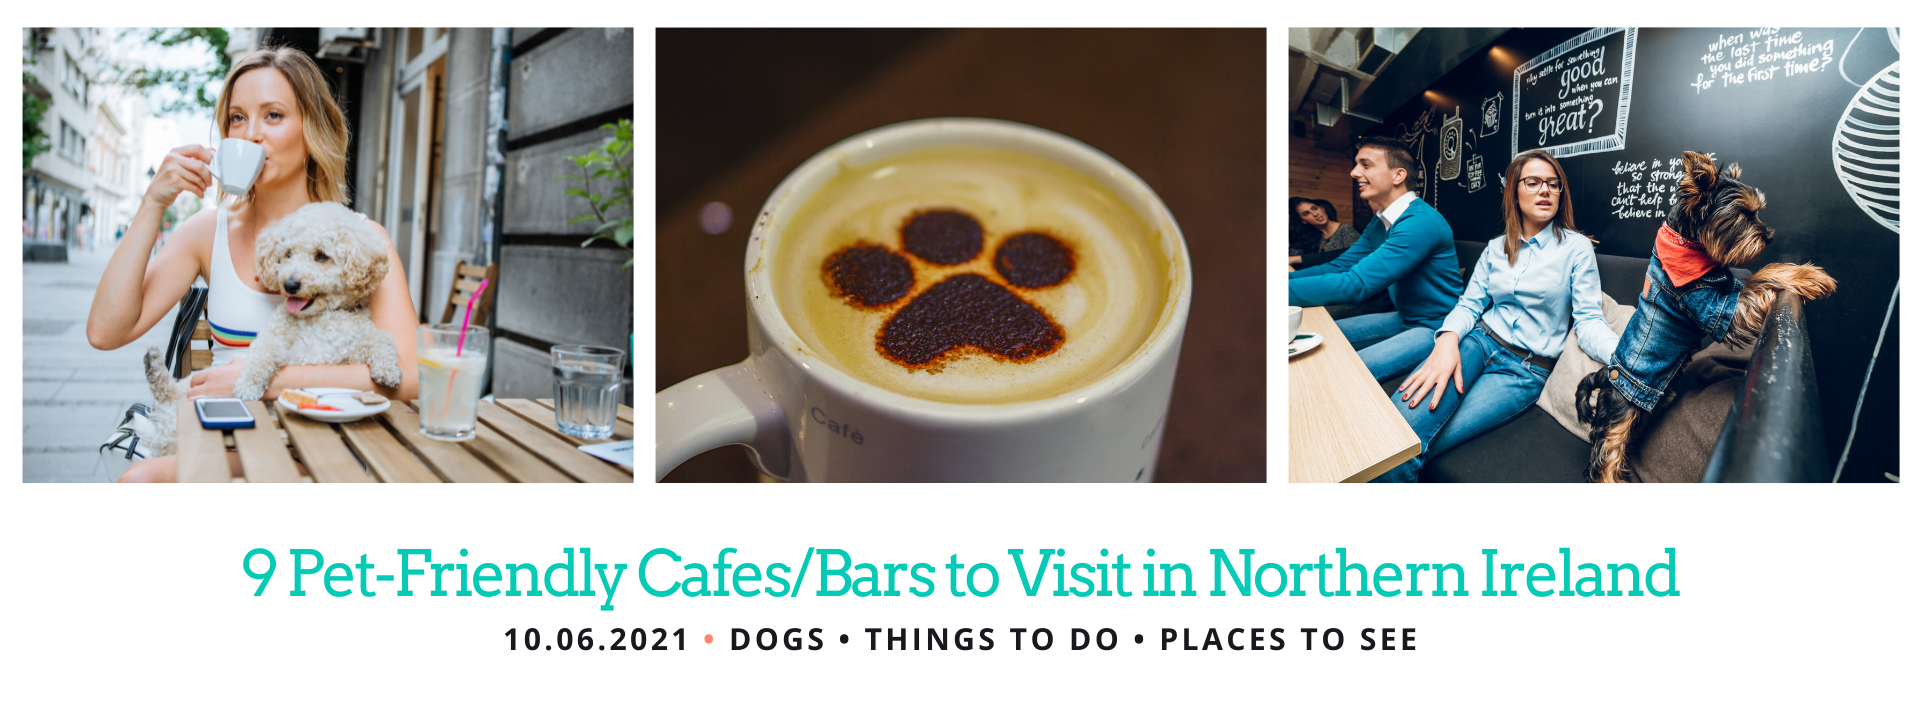 Places to Visit with your dog in Northern Ireland